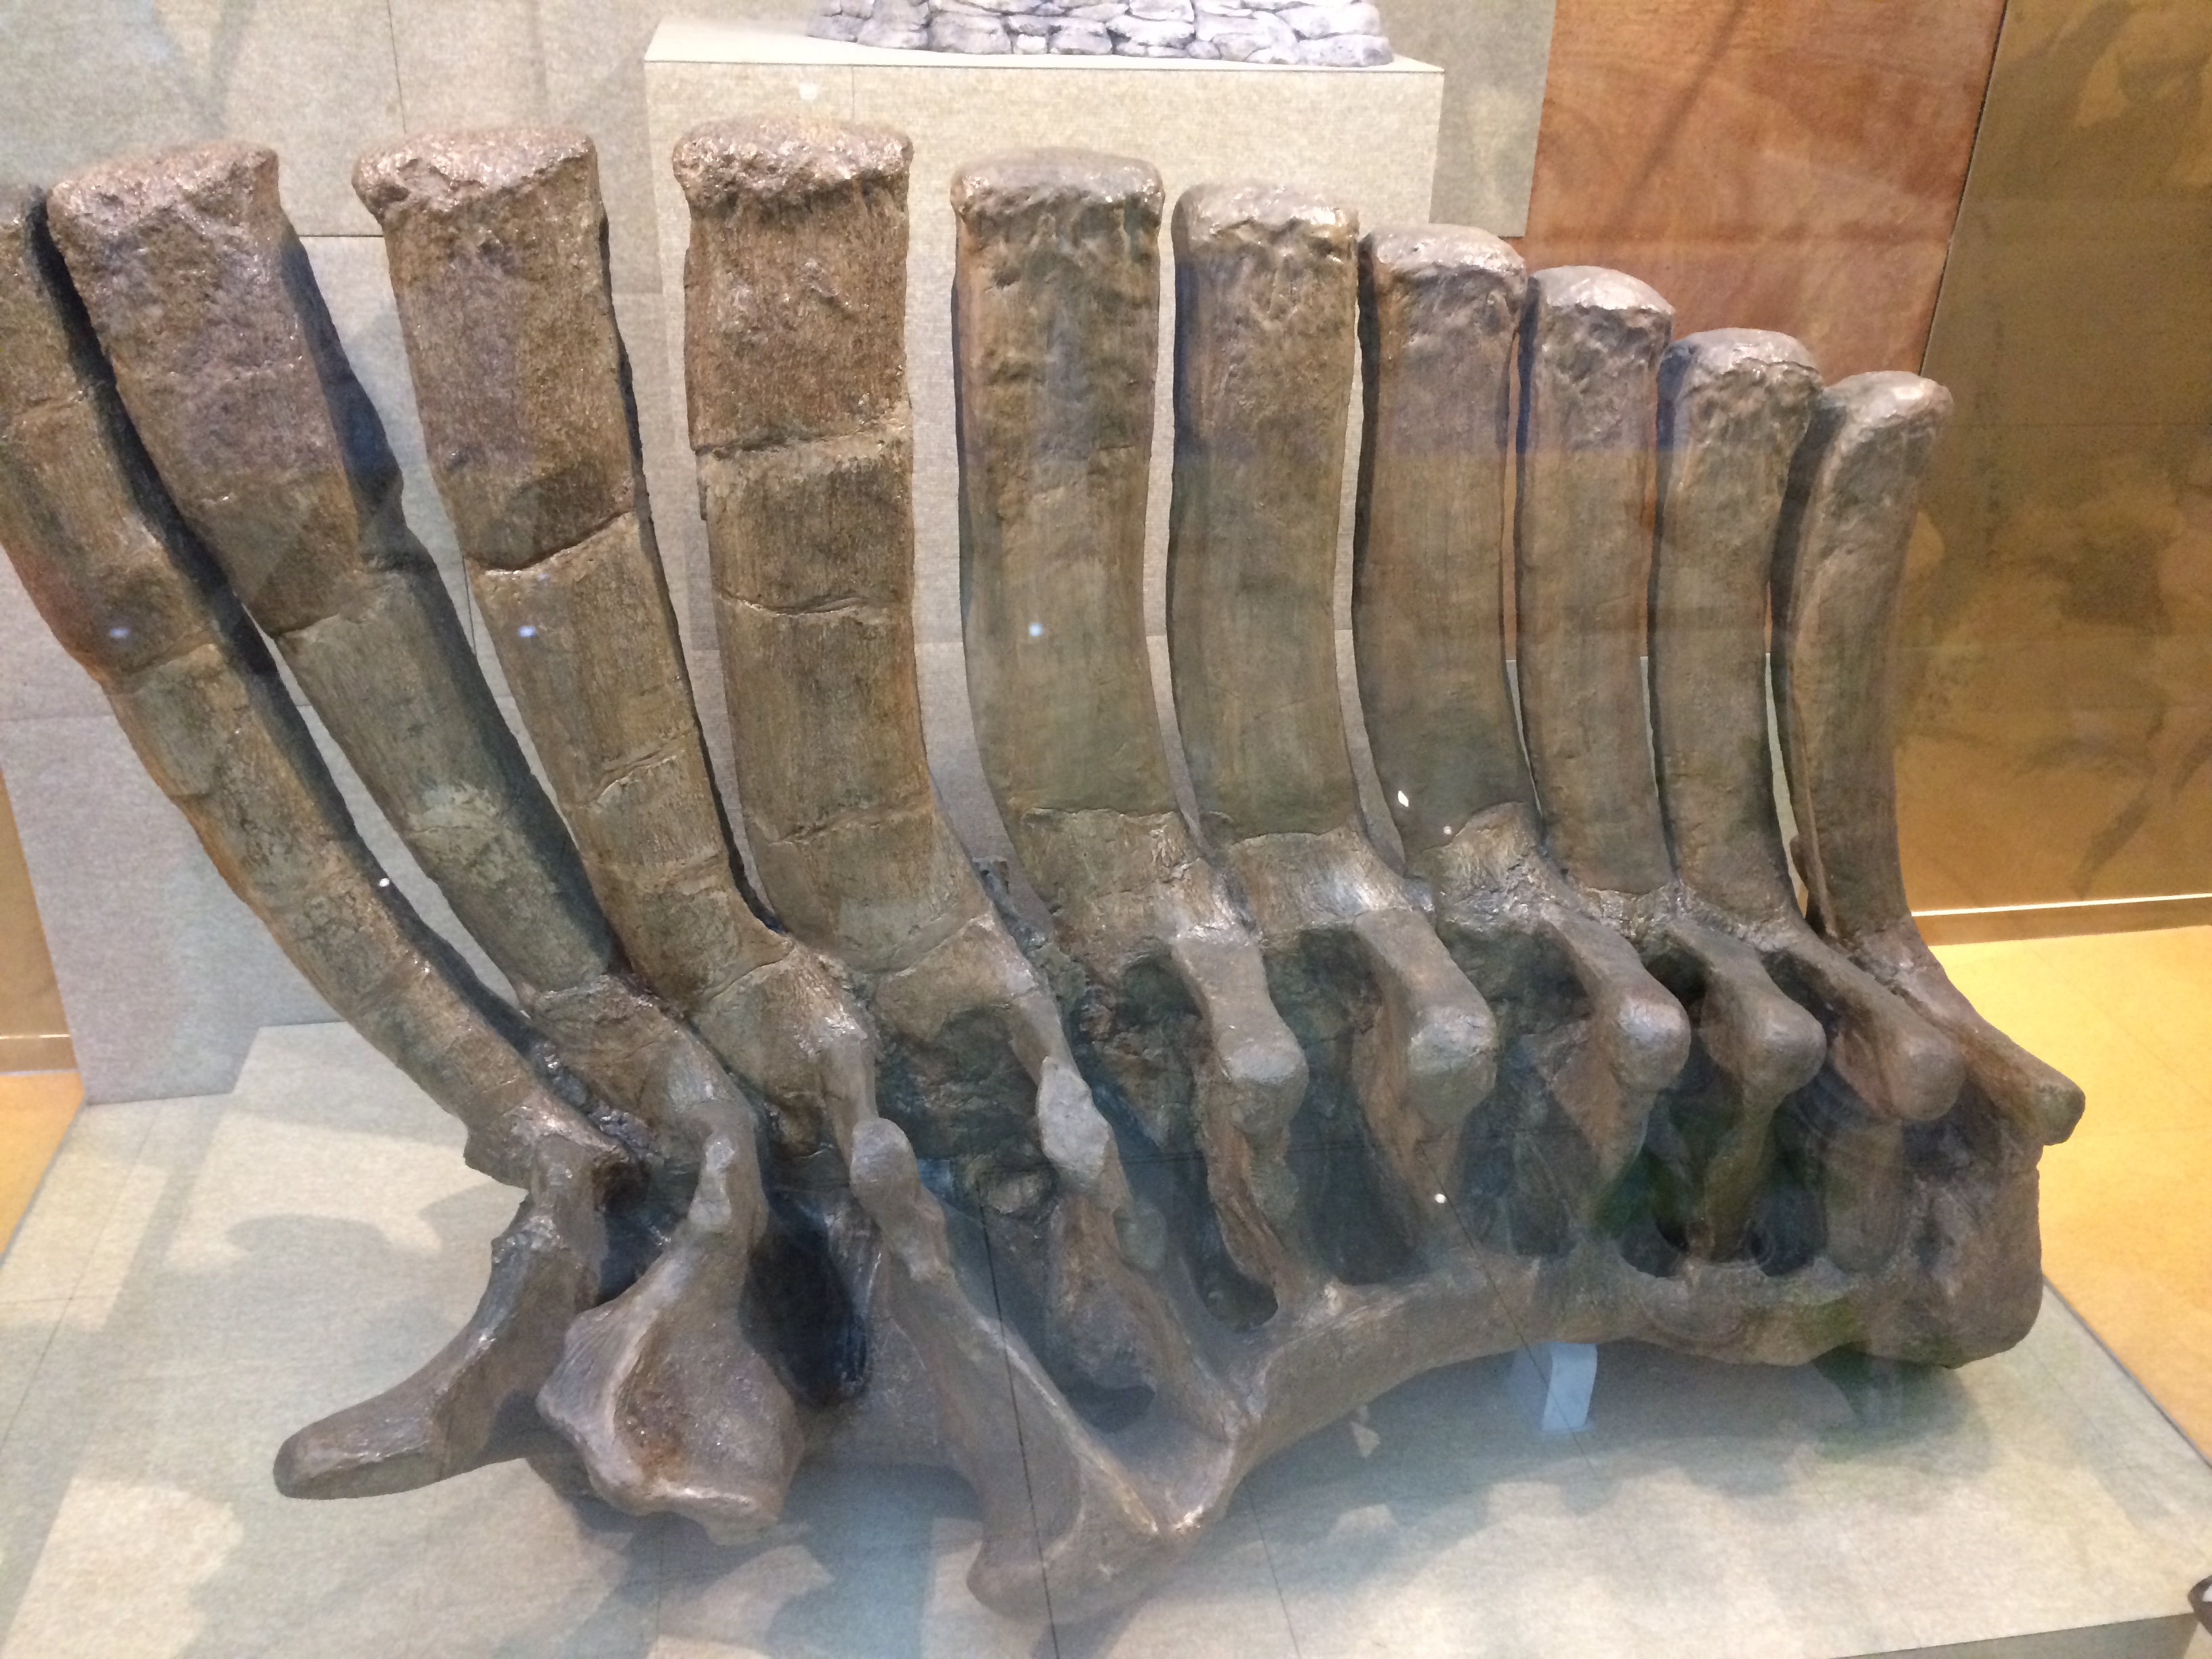 fossil dating wikipedia Fossils and dating  see this wikipedia page detailing just a partial list of transitional fossil examples:   ist_of_transitional_fossils.